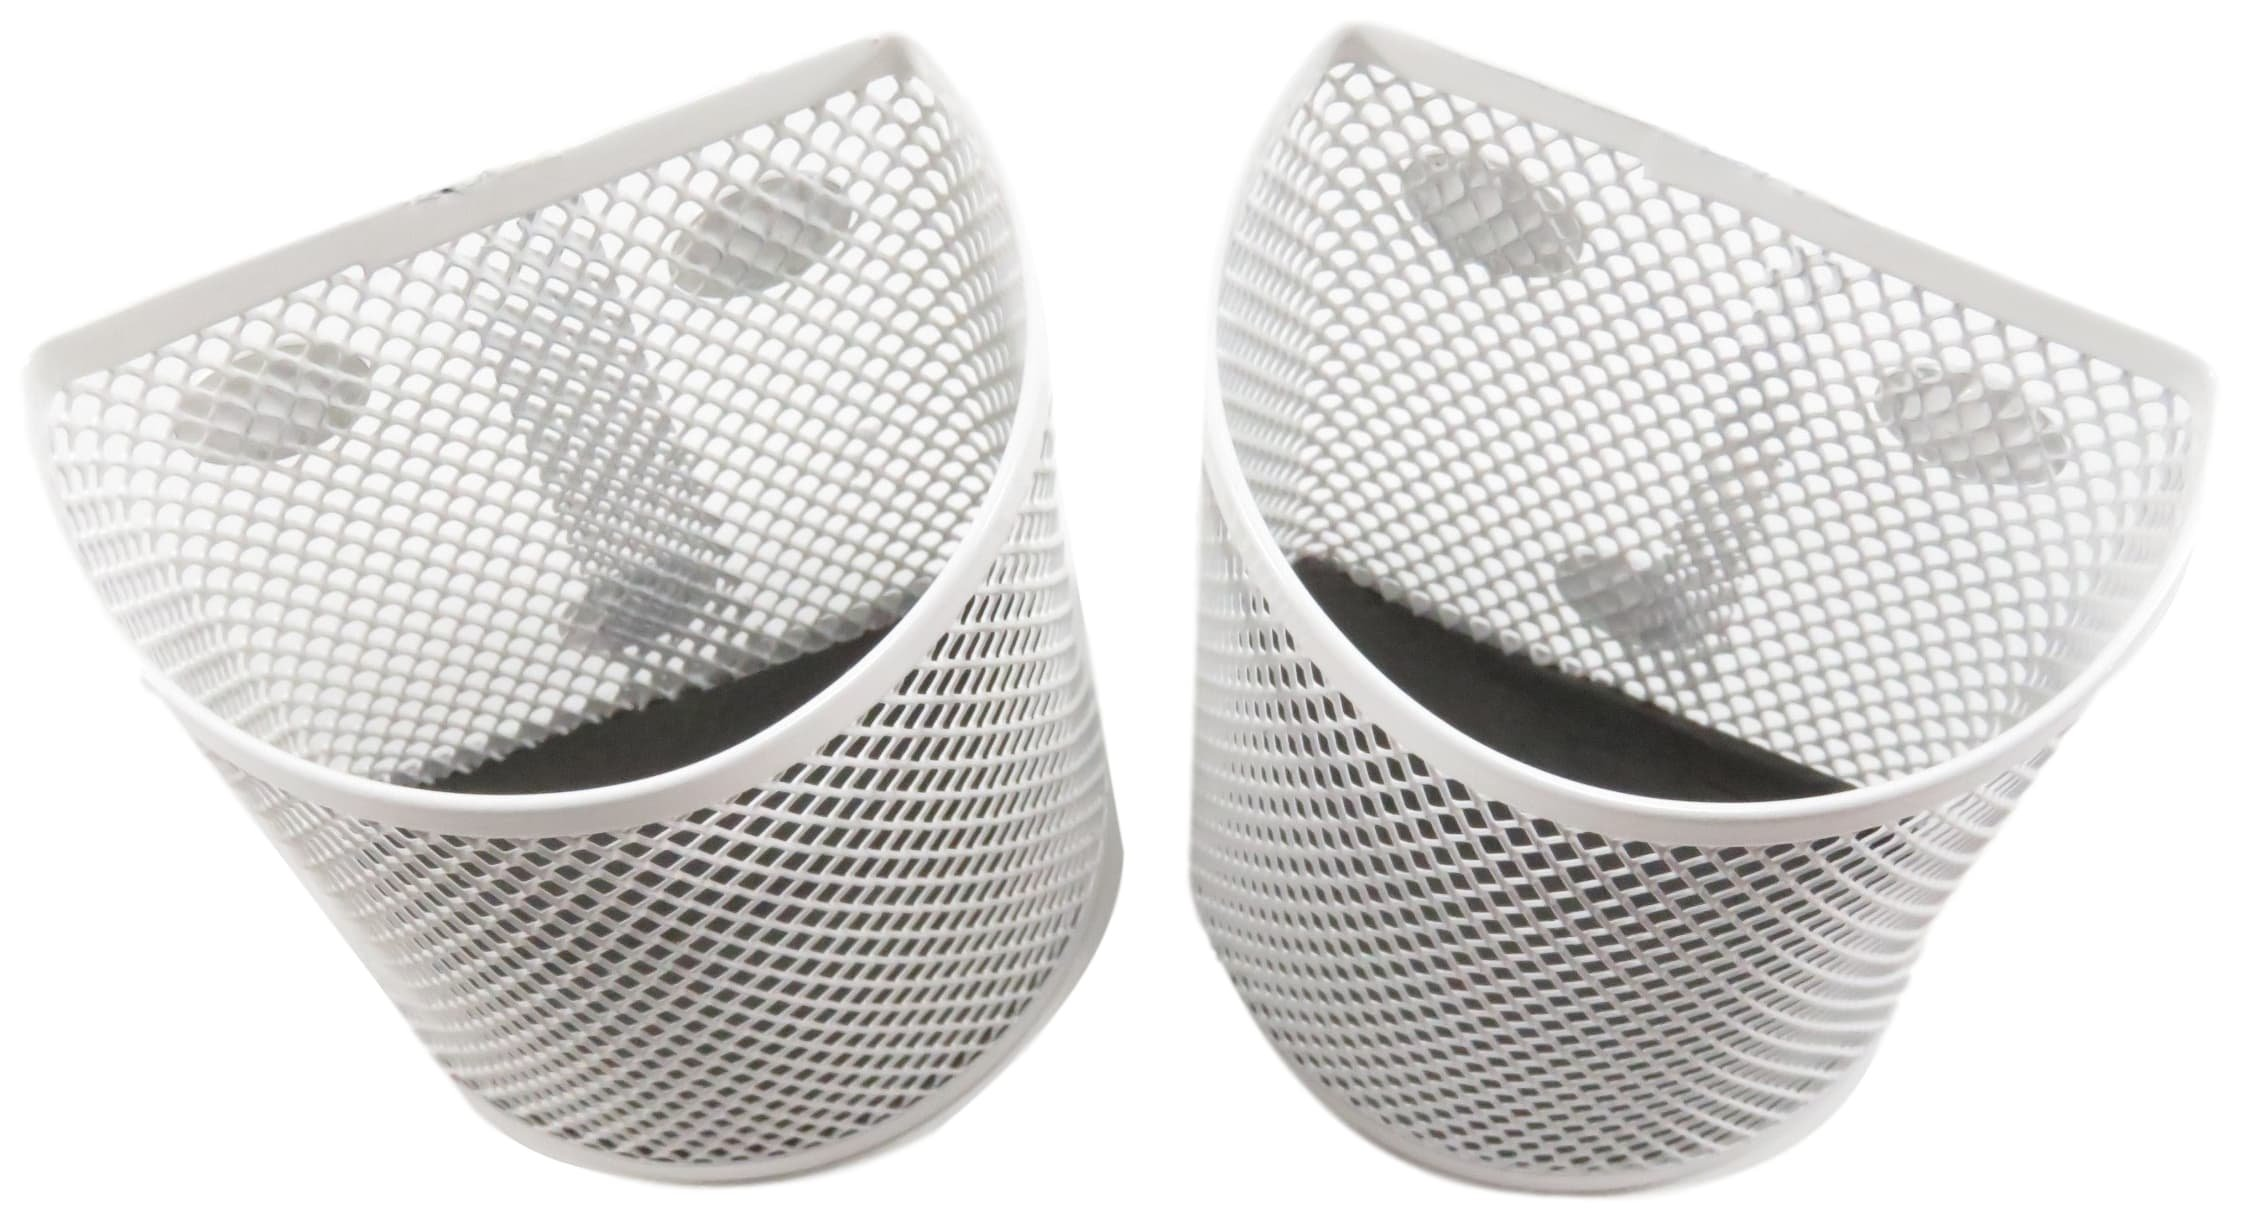 Half Moon Mesh Wire Pen Pencil Holder Magnetic 3.7 x 2.8 White (Set of 2) by Daiso (Image #3)